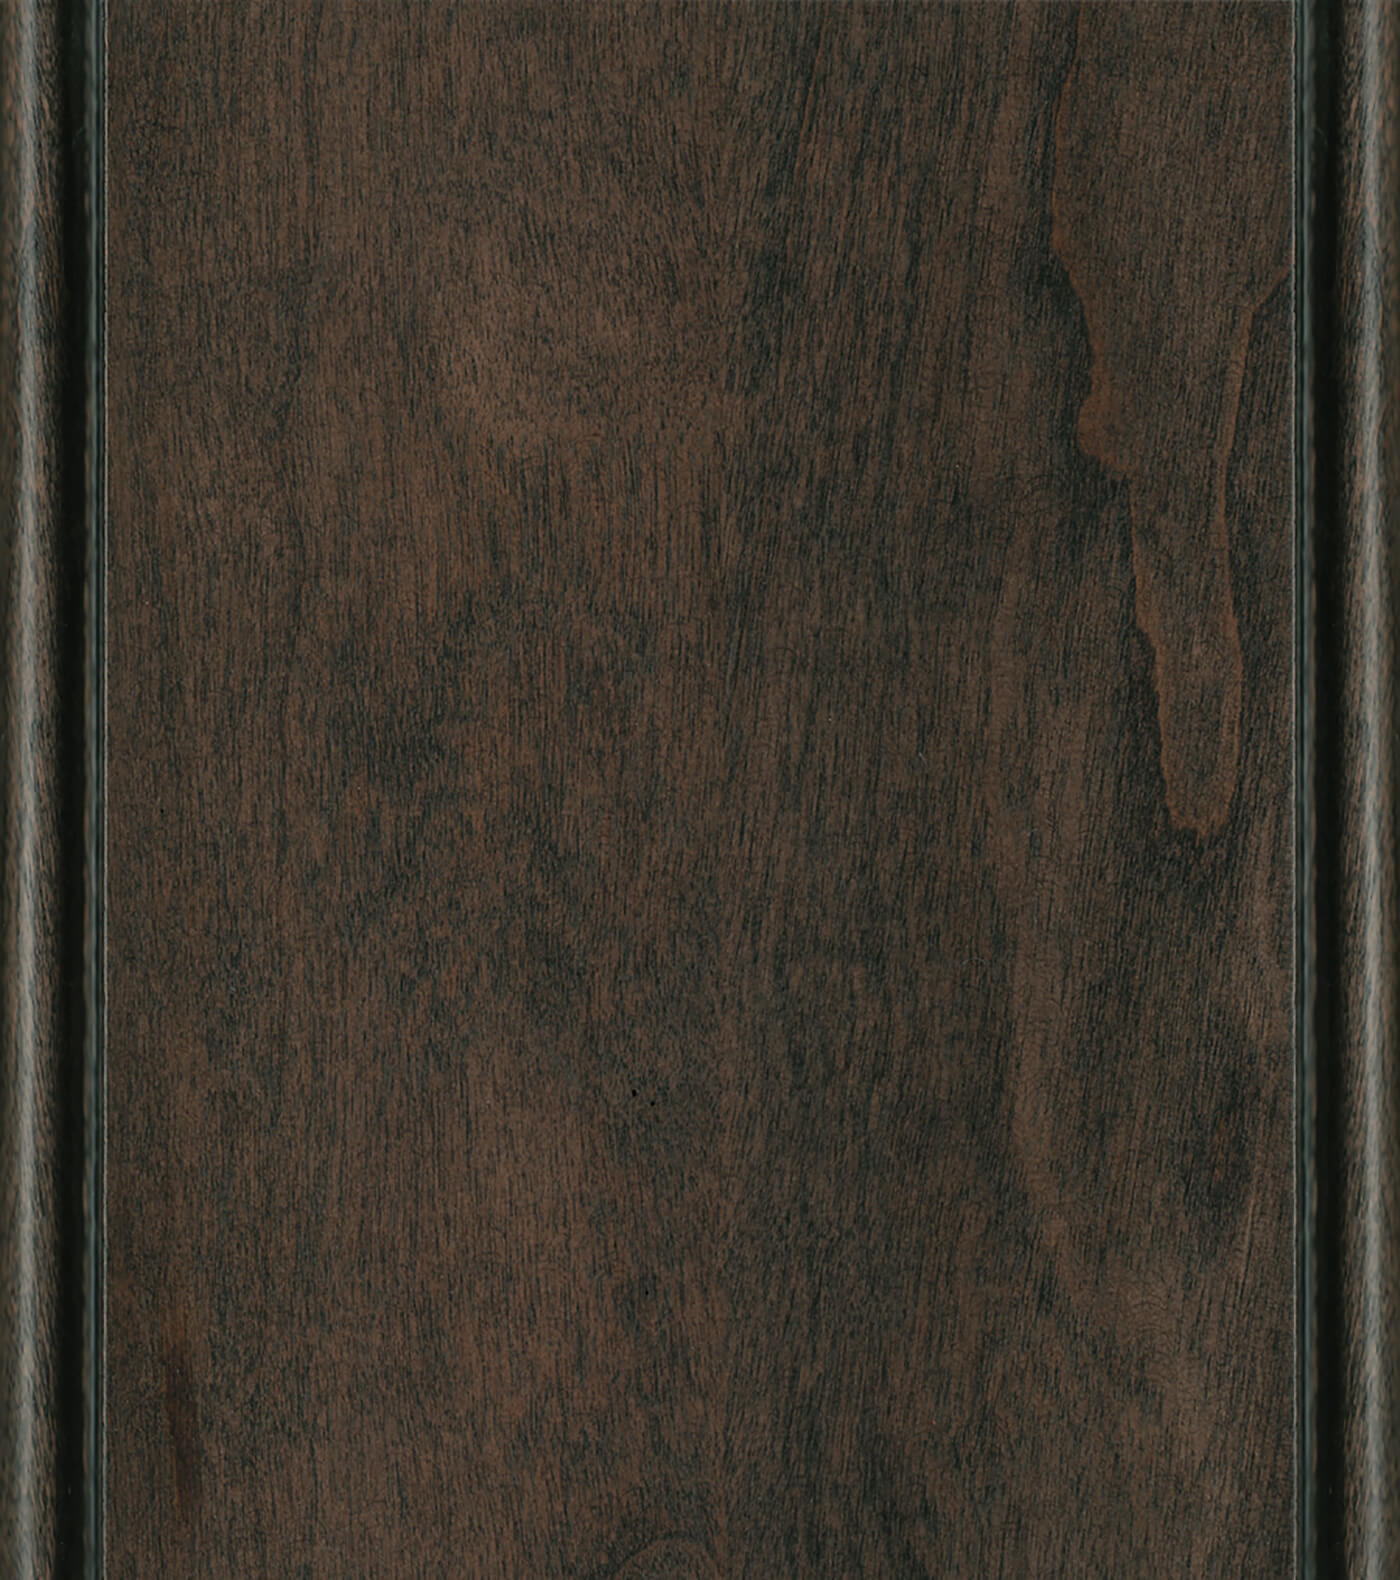 Caraway Stain on Cherry